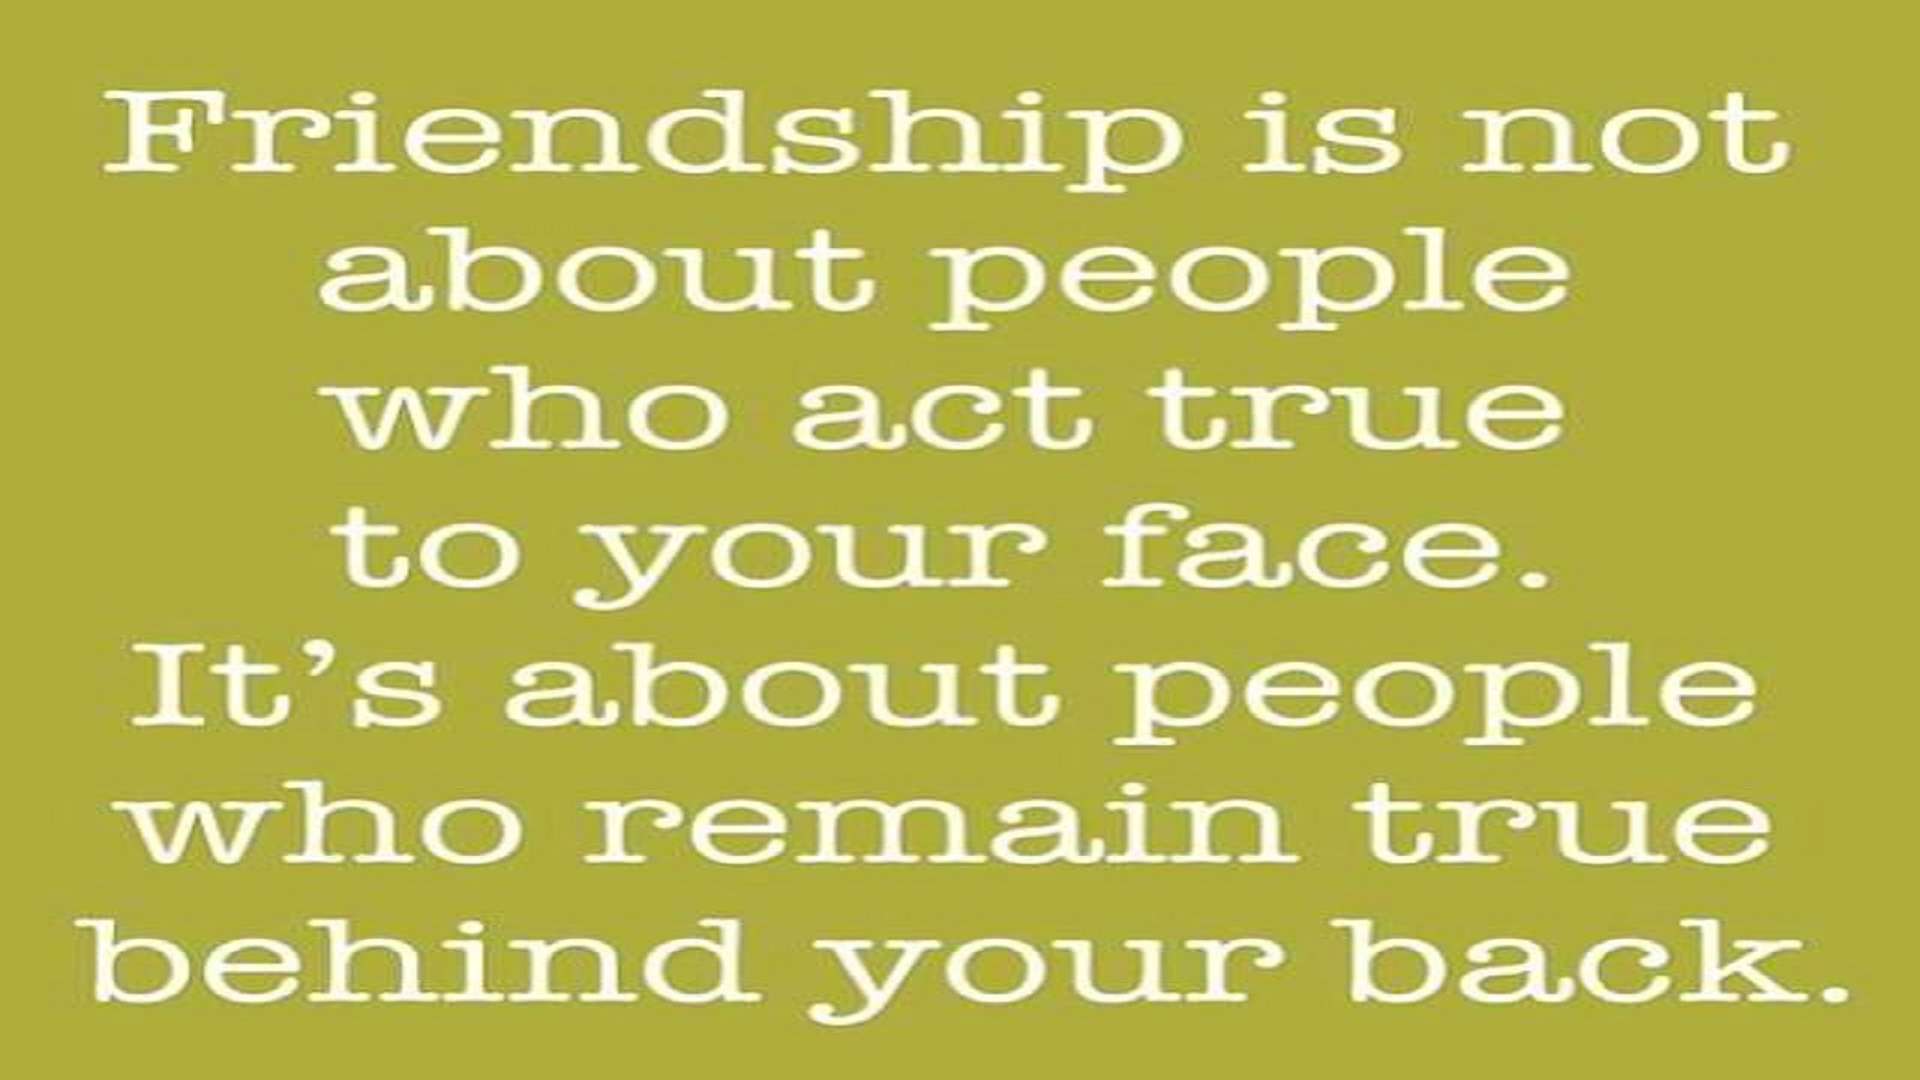 Quotes About Funny Friendship Bestandfunnyfriendshipquotefreehdwallpapers  Hd Wallpaper